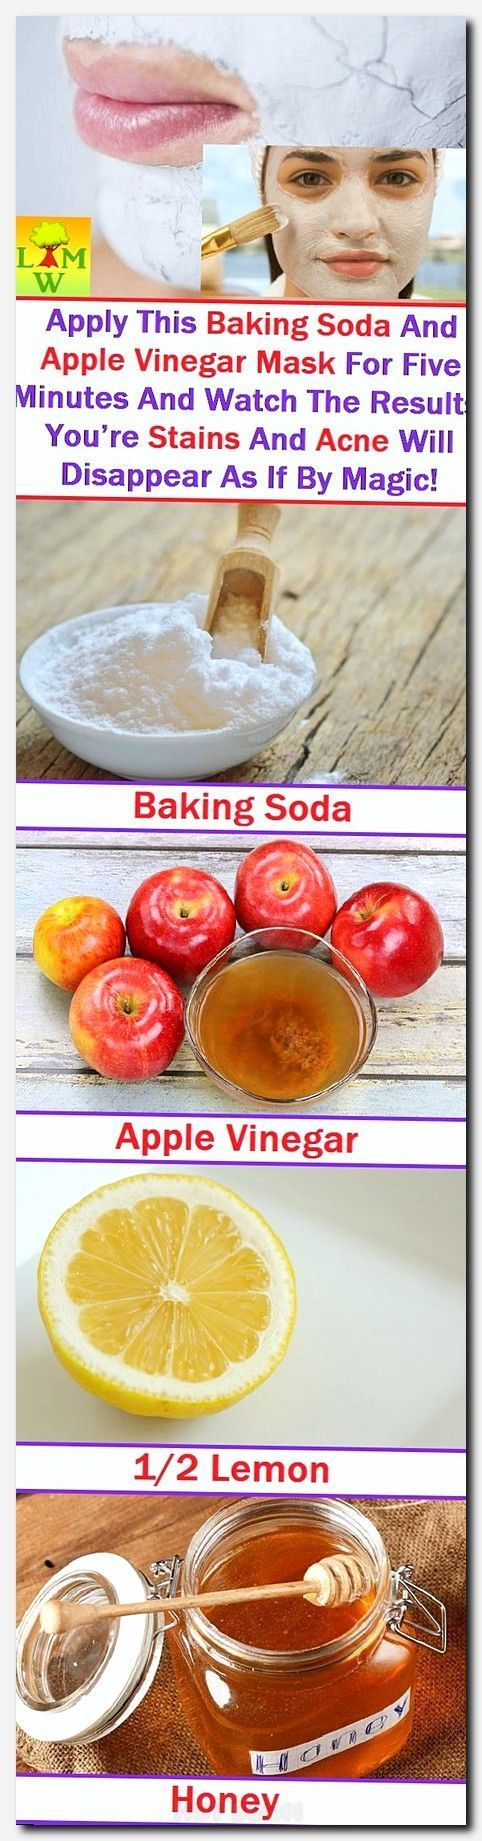 #skincare #skin #care how to prevent face pimples, spots from the sun, how to get get rid of acne, licensed esthetician job description, body treatment salon, dry skin patches on body, skin care chicago, we are health and beauty, how can you get rid of ac